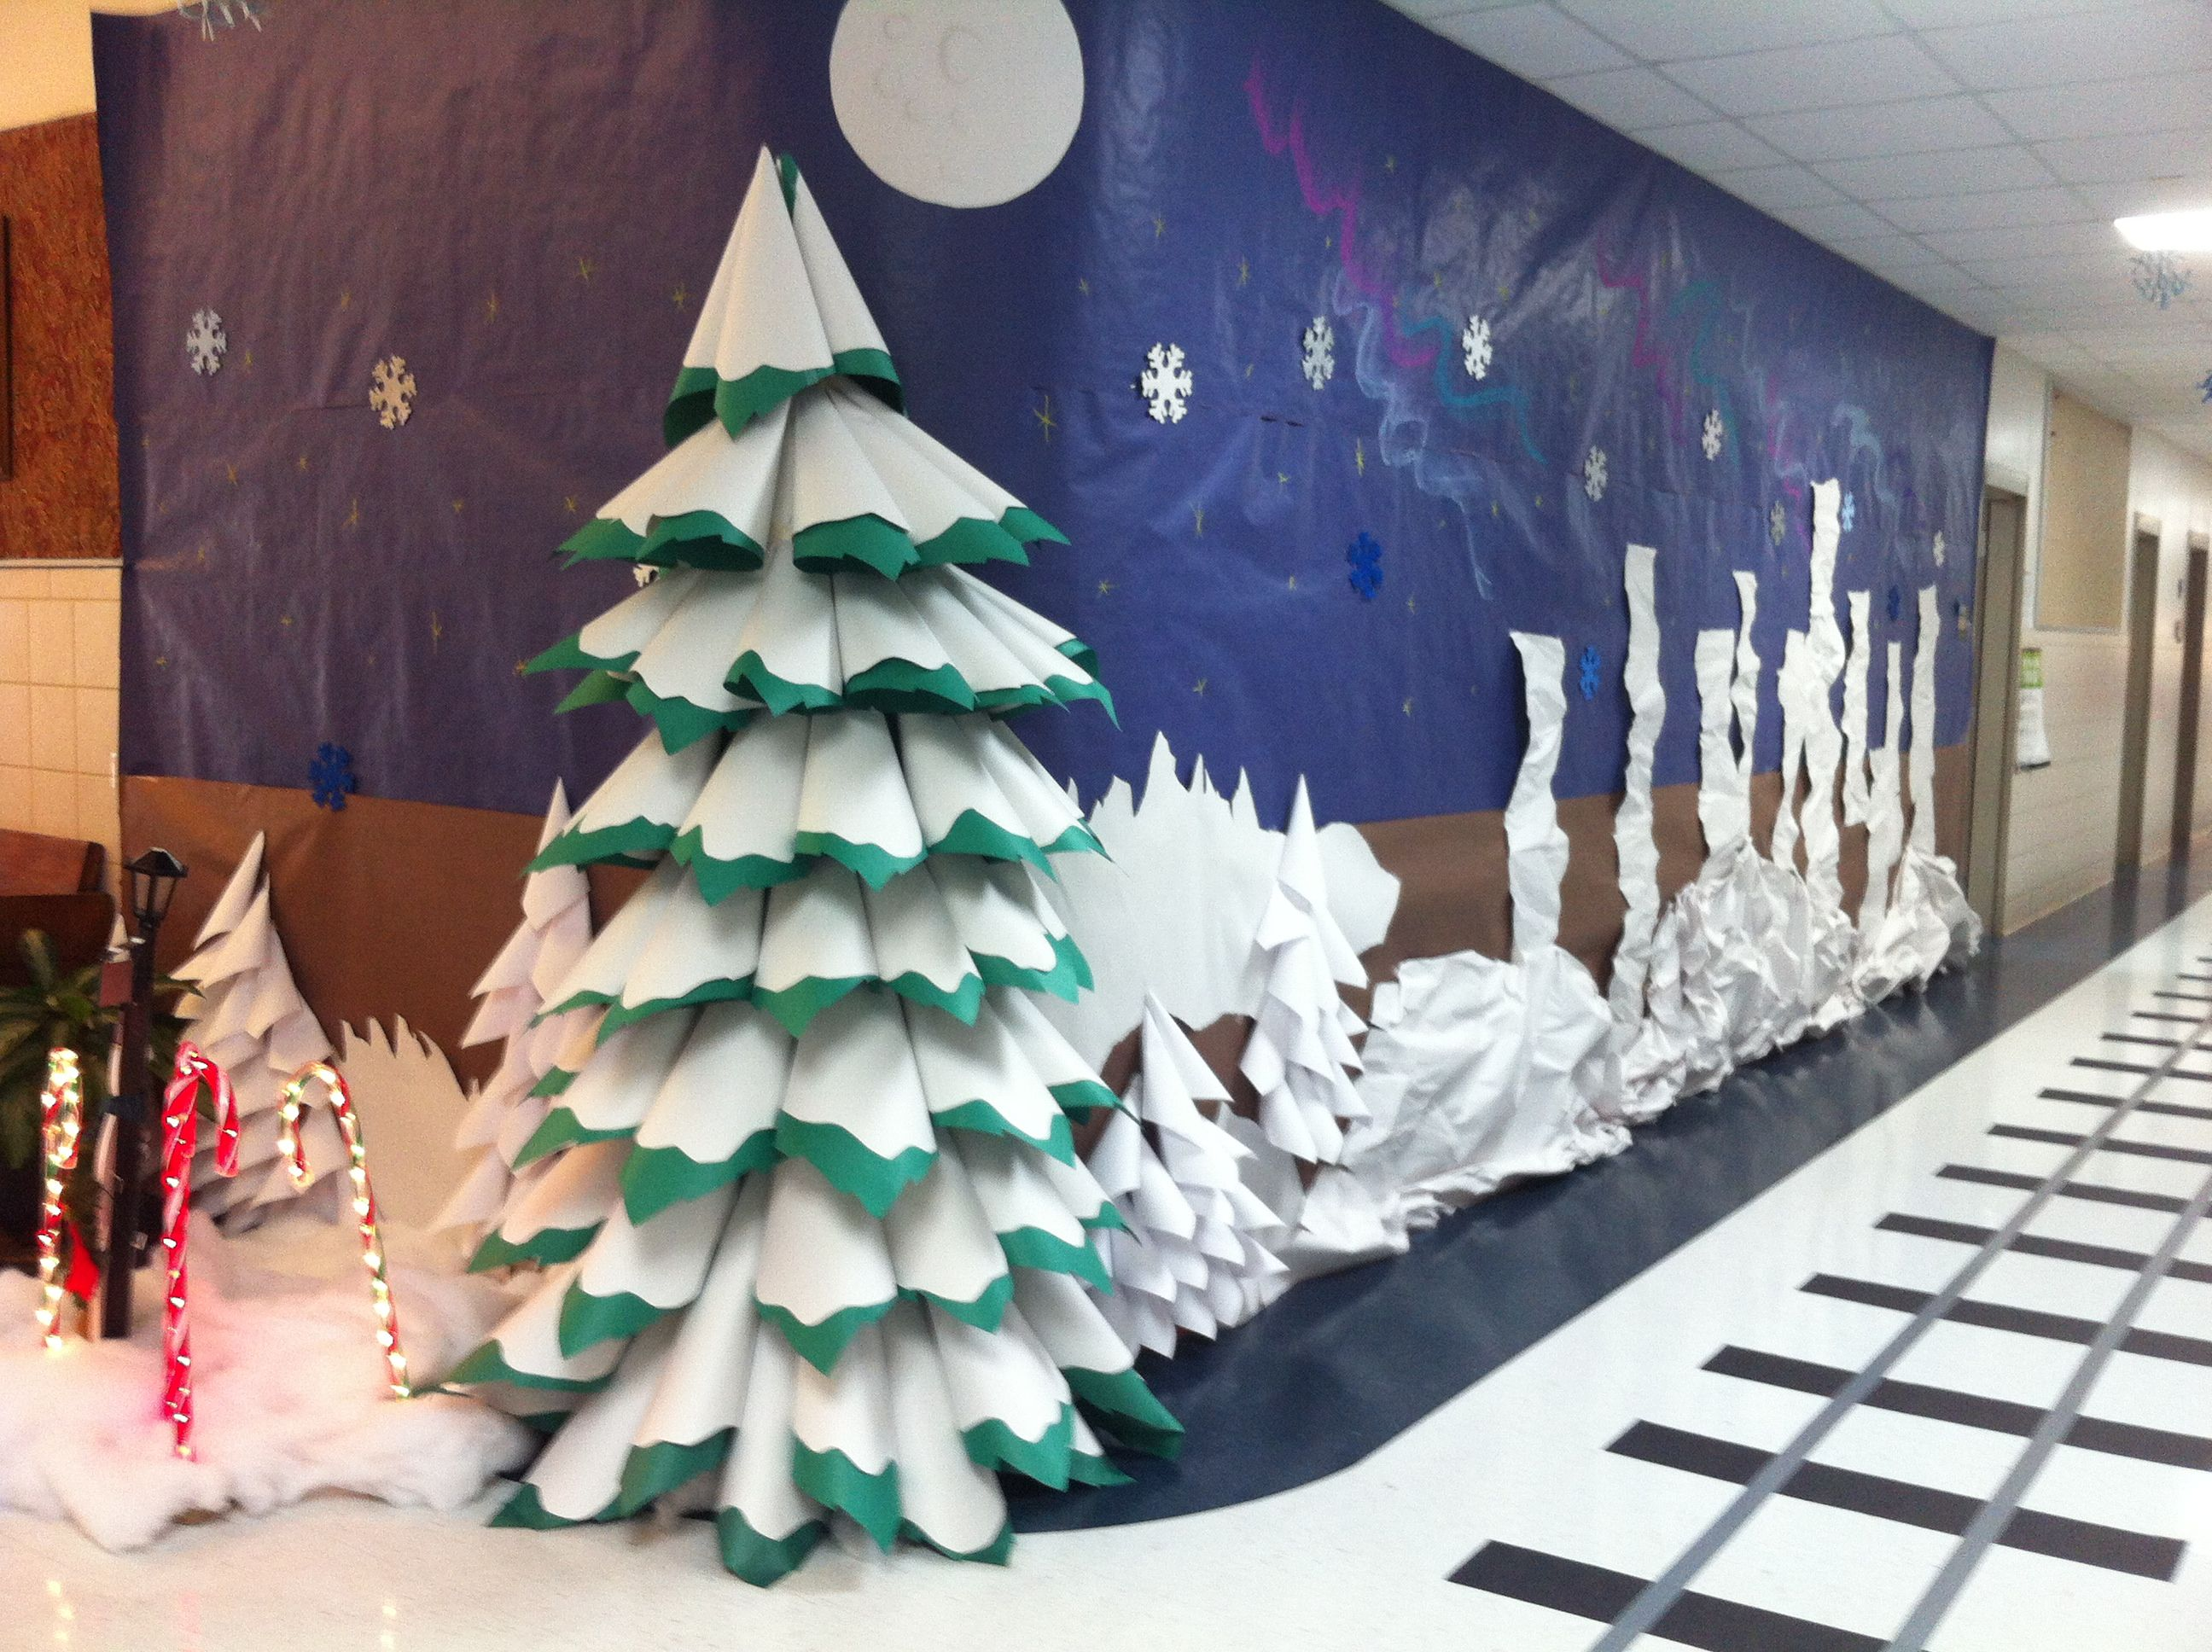 paper come tree for polar express visit to halls of my school